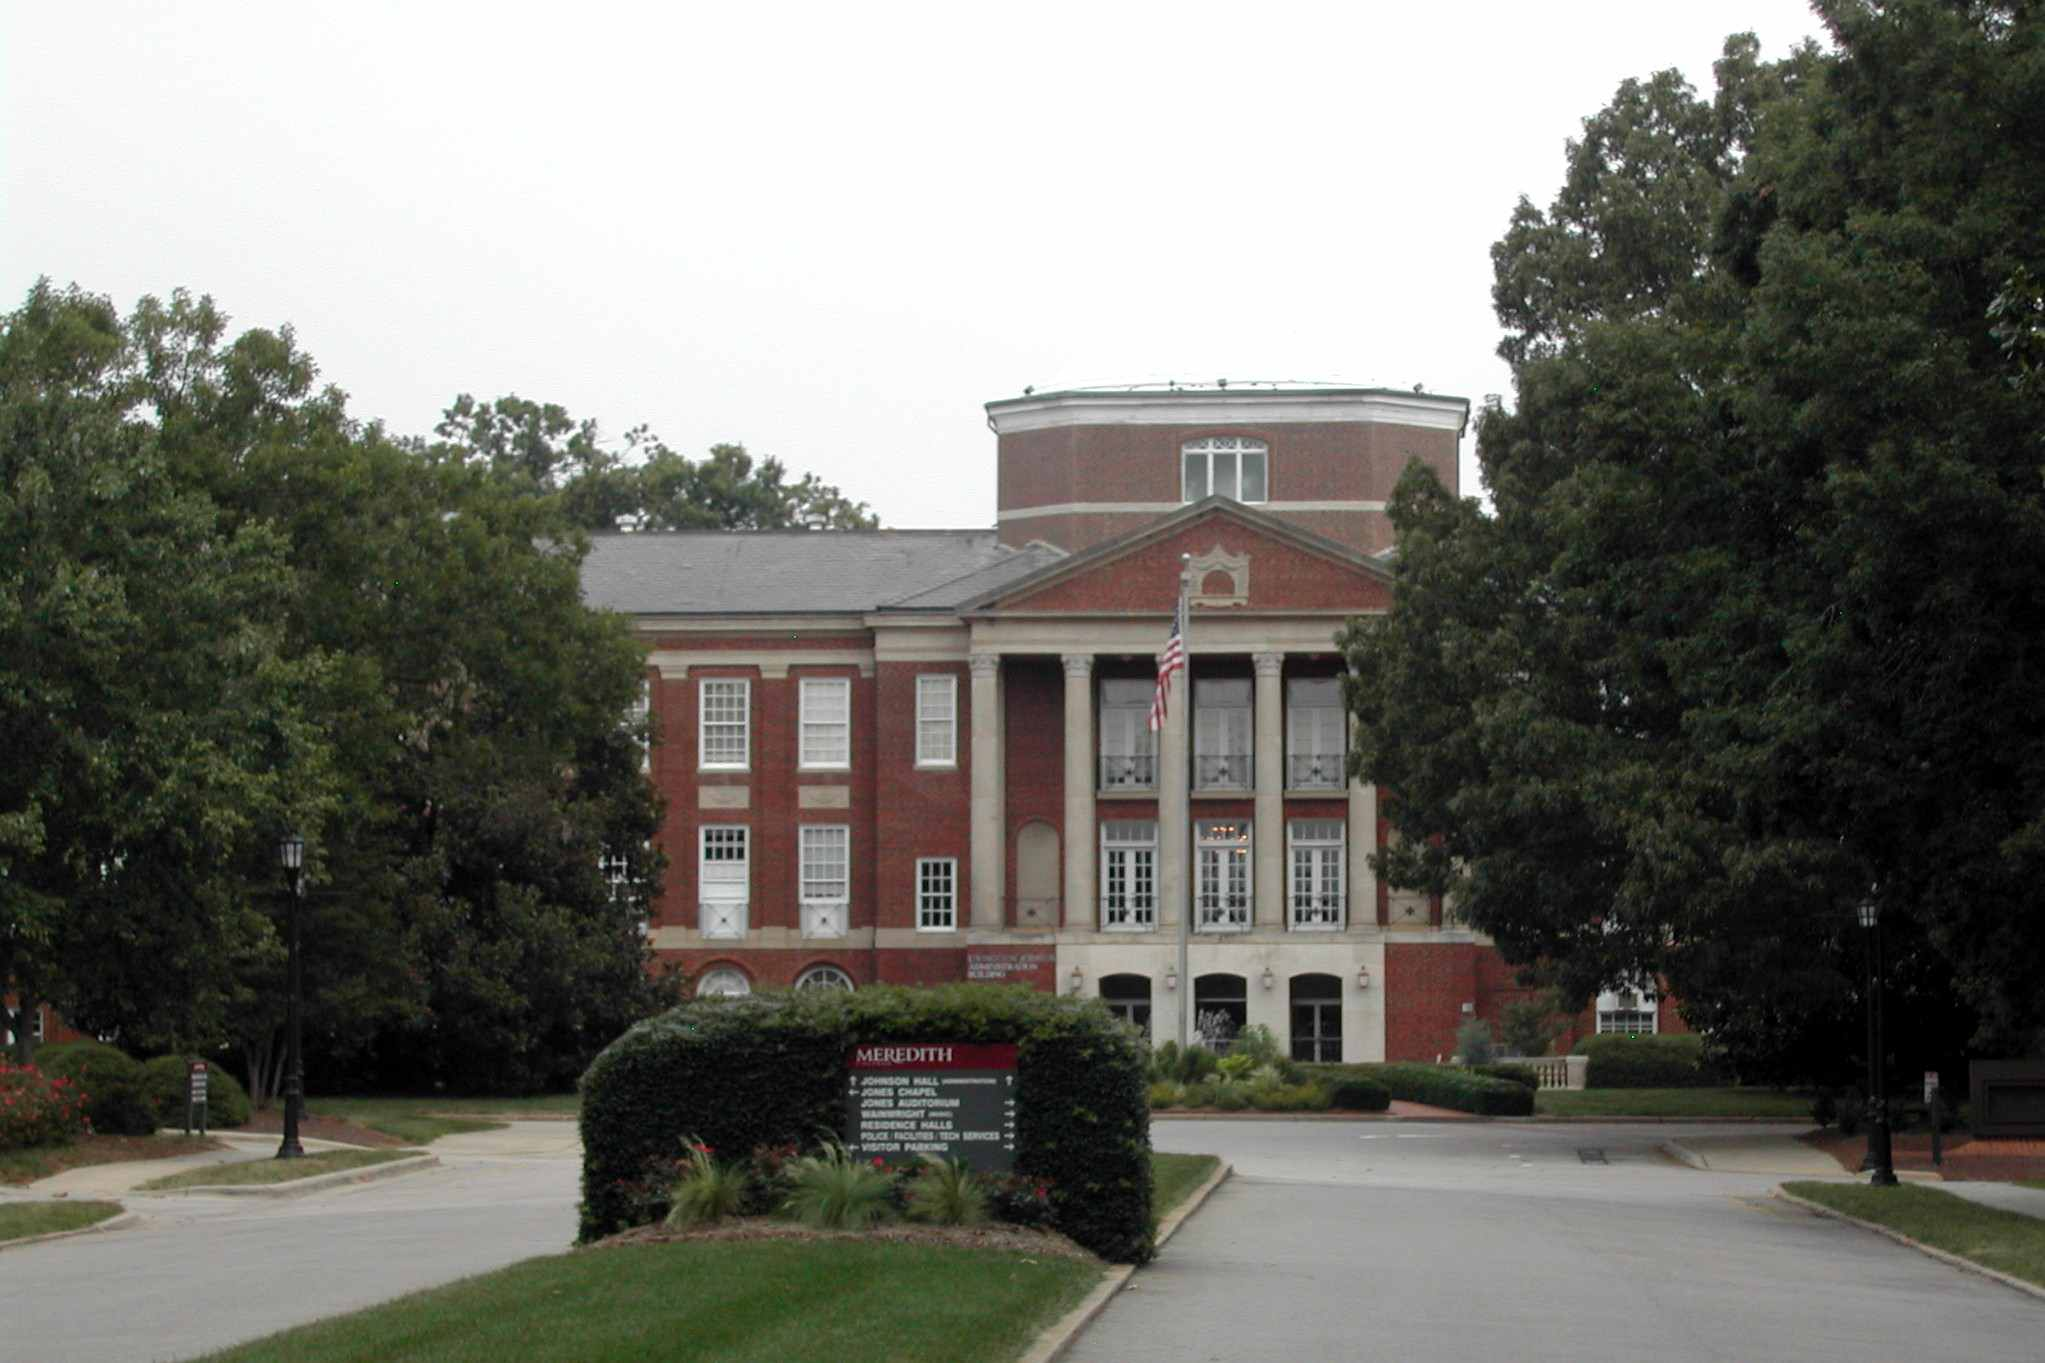 Johnson Hall, which greets anyone entering from the Hillsborough Street entrance of Meredith College